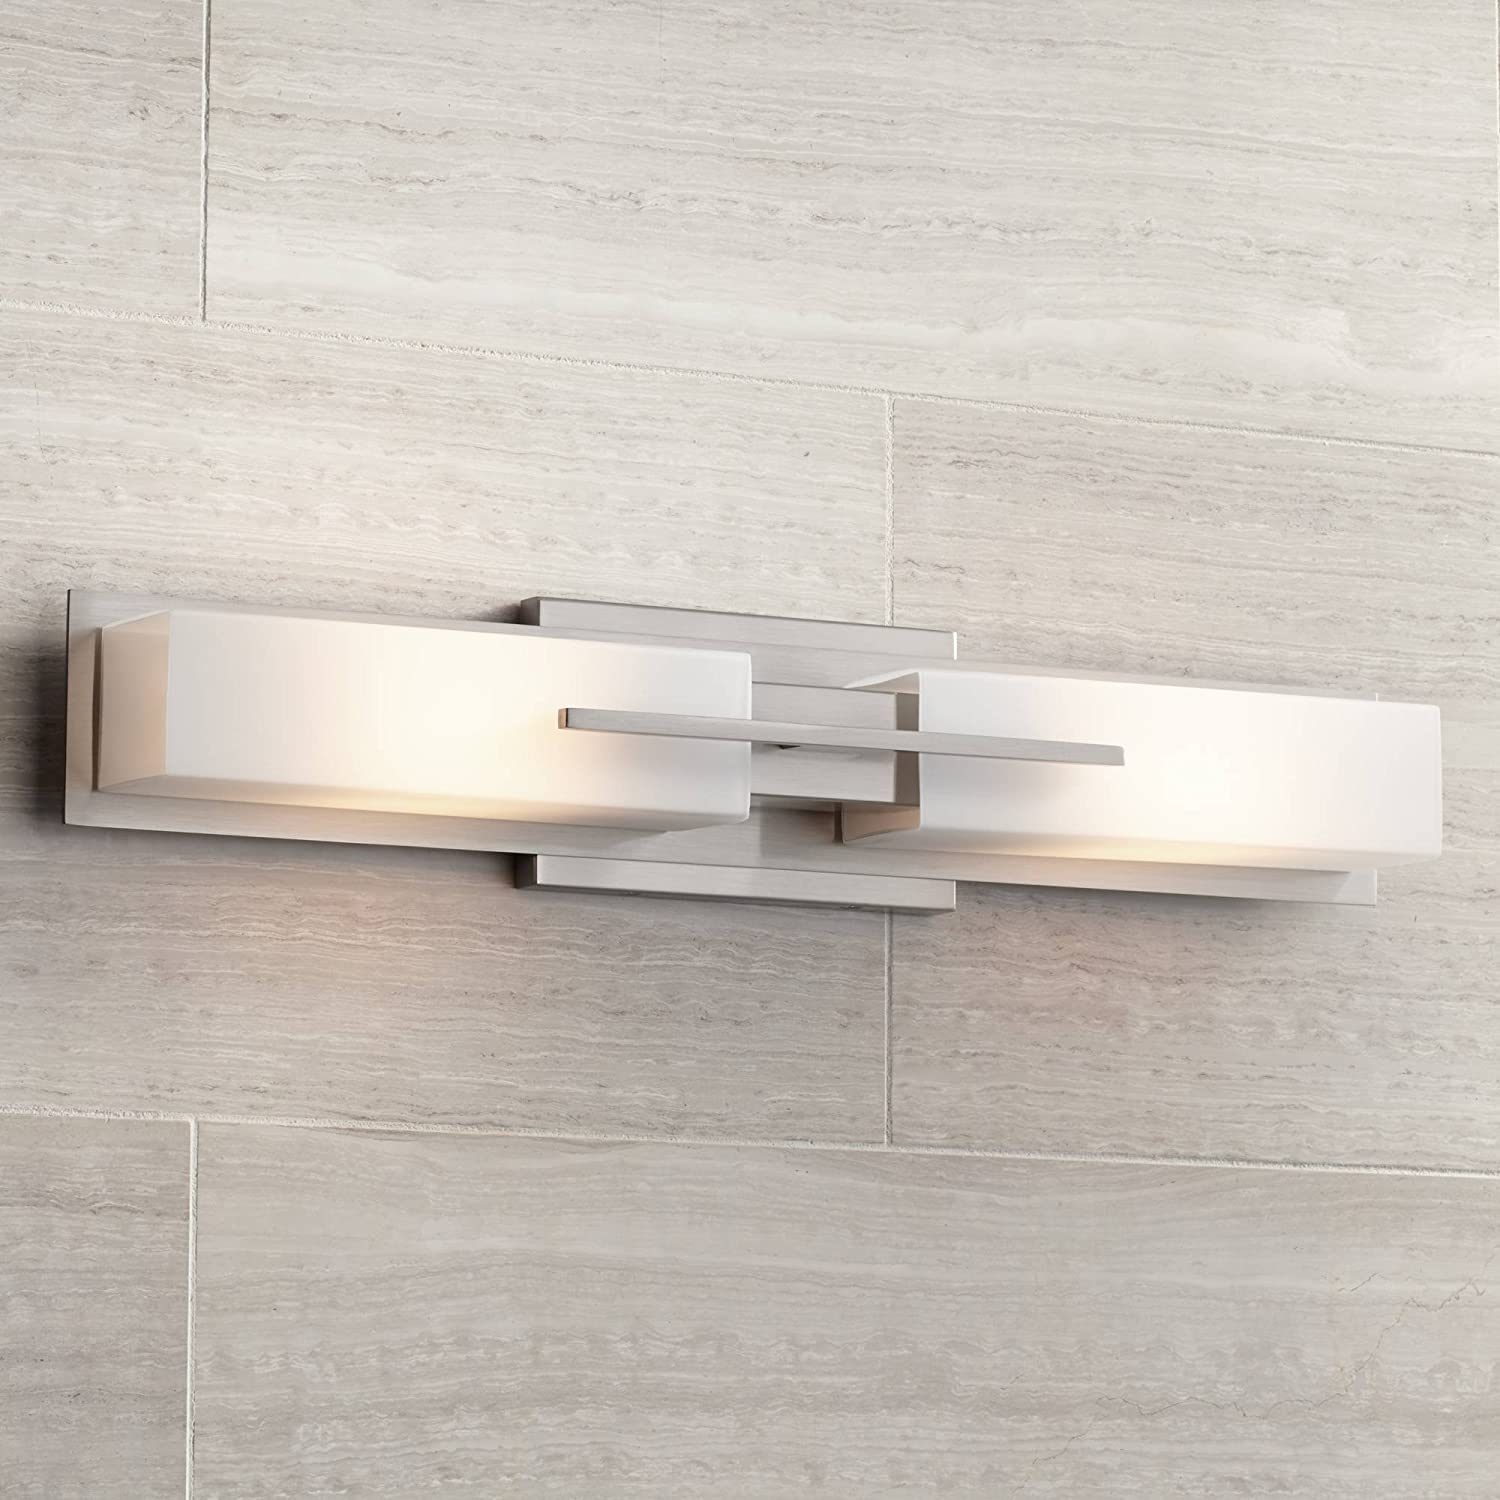 Midtown Modern Wall Light Brushed Nickel 23 1 2 Vanity Fixture for Bathroom Over Mirror Bedroom – Possini Euro Design